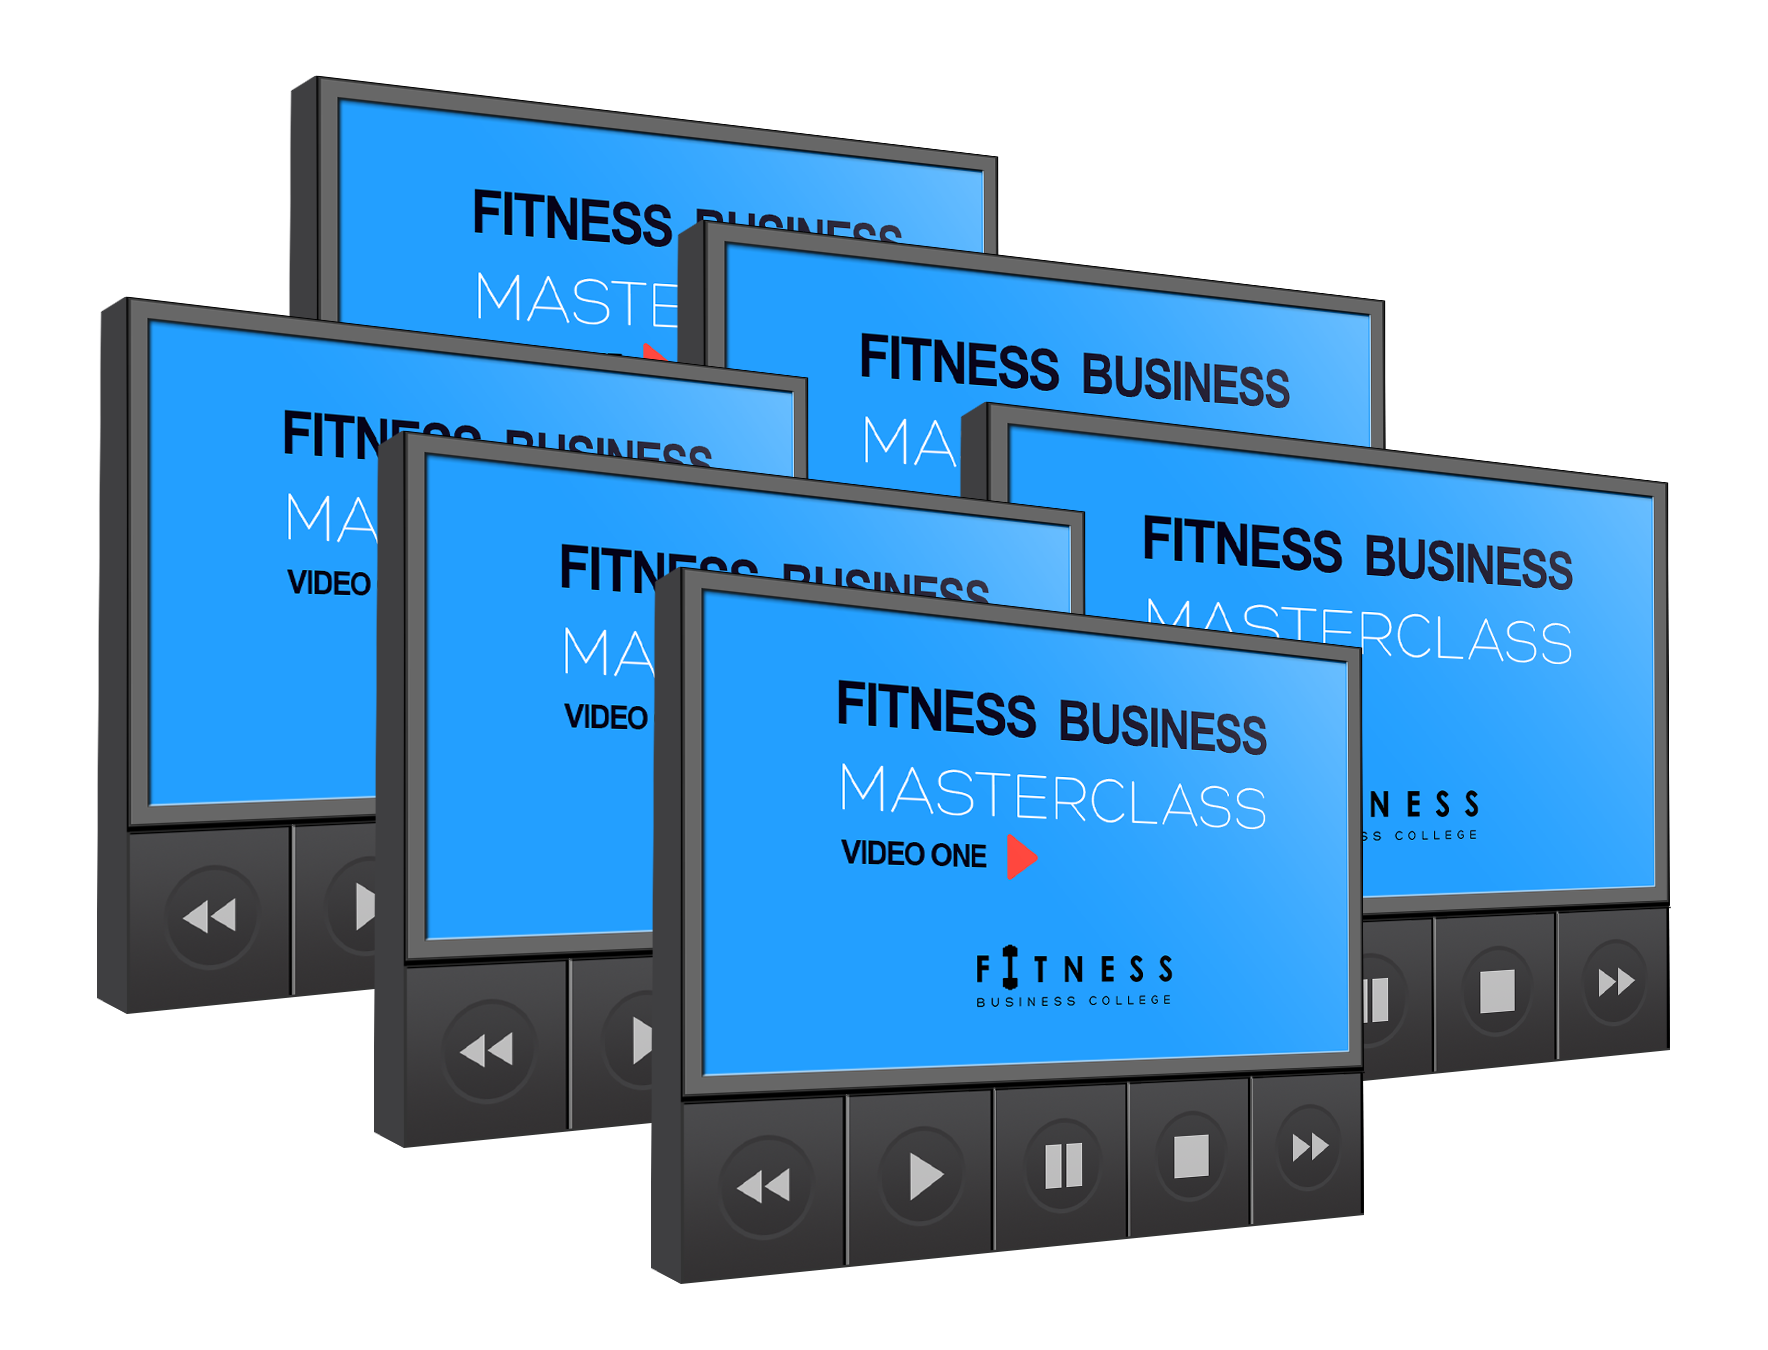 fitness-business-masterclass-videos